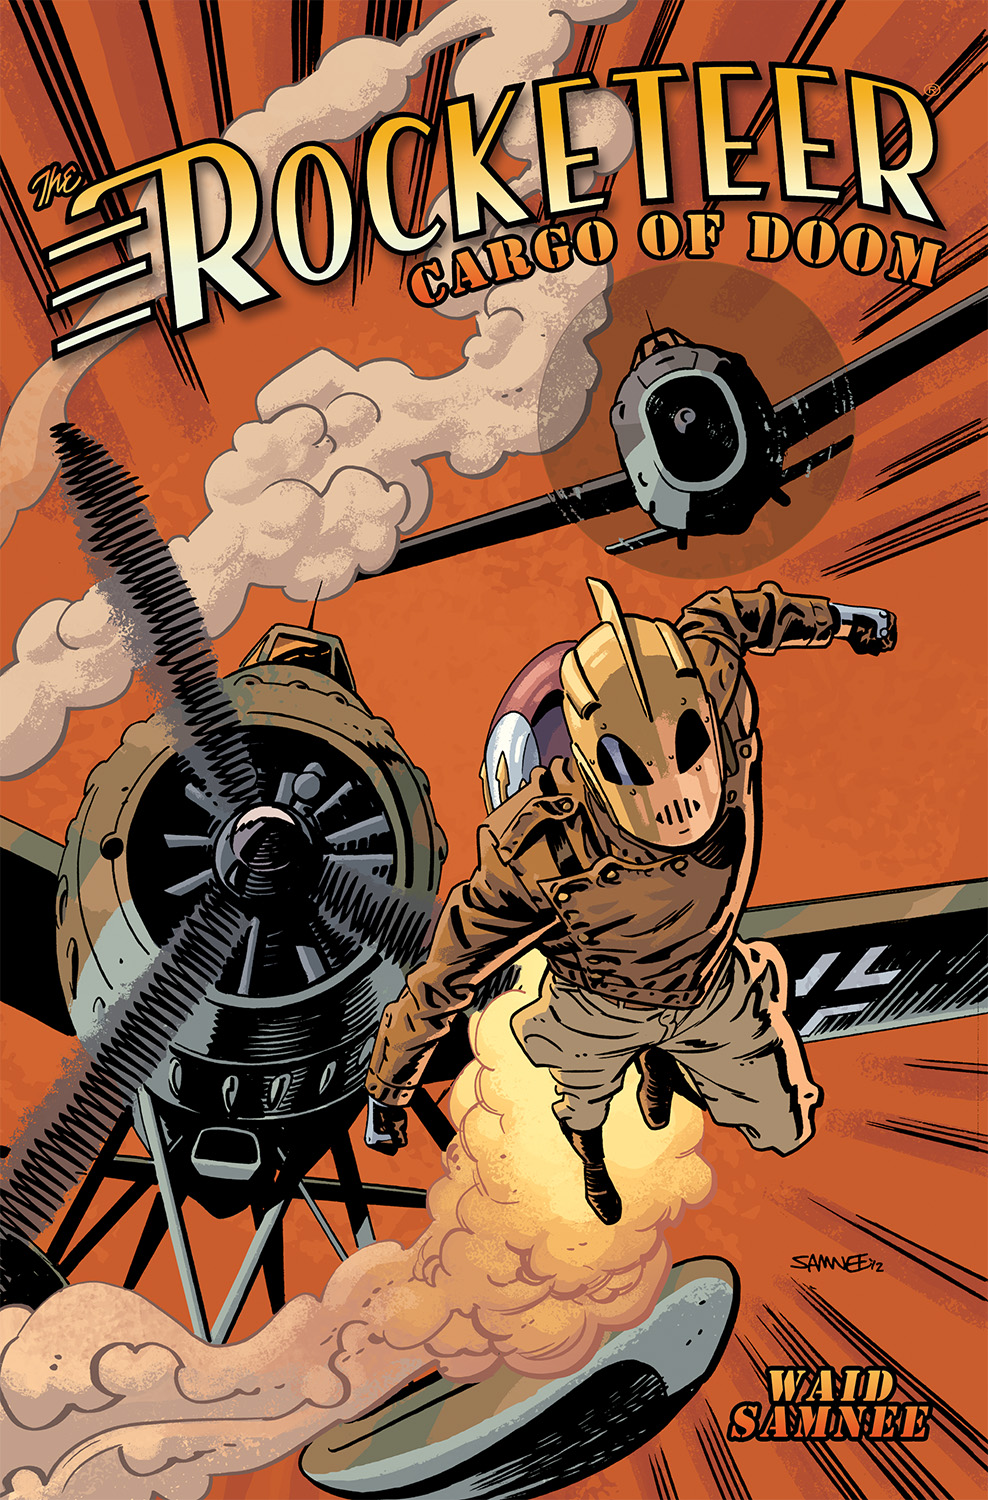 The Rocketeer Cargo of Doom